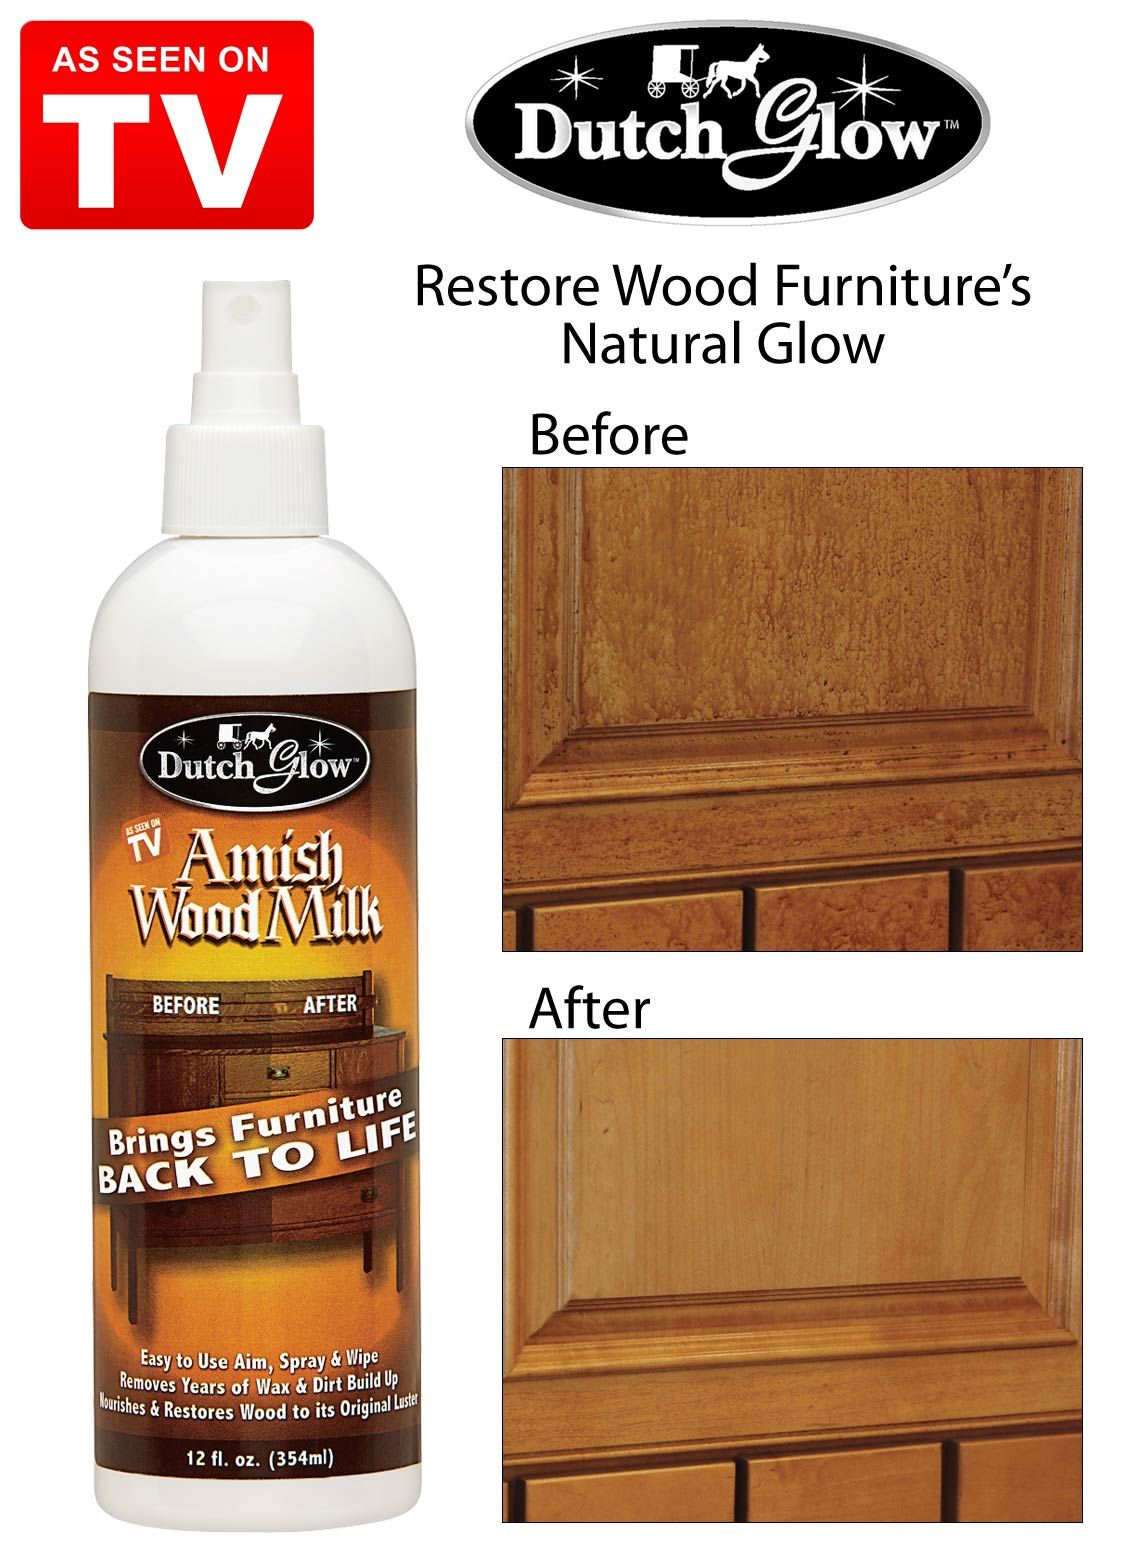 Dutch Glow As Seen On Tv Amish Wood Milk See On Tv Restore Wood Furniture